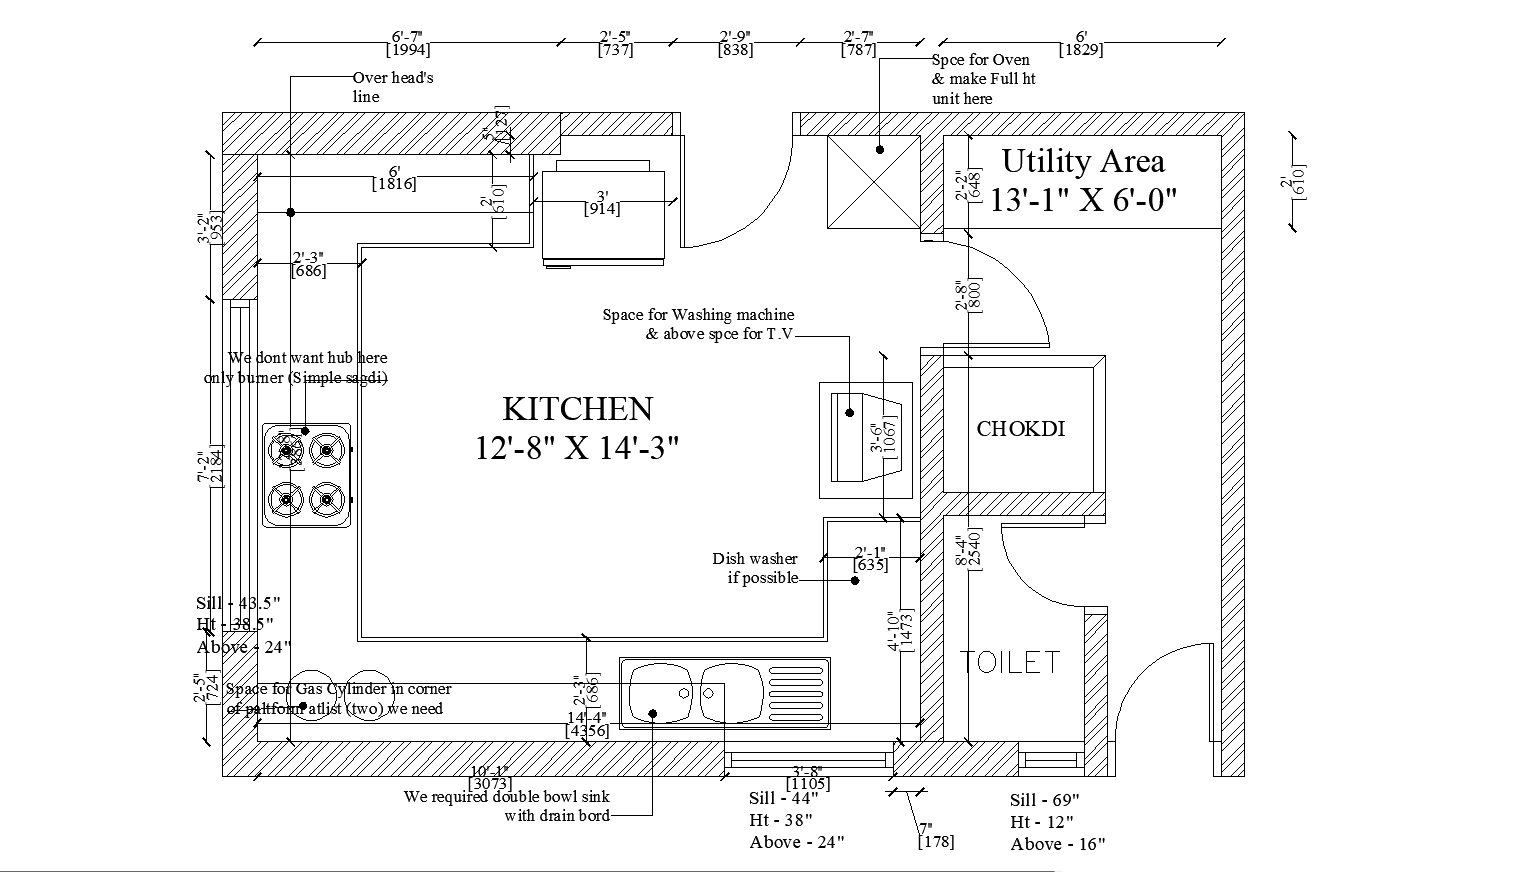 Layout plan of Kitchen with detail dimensions in Autocad